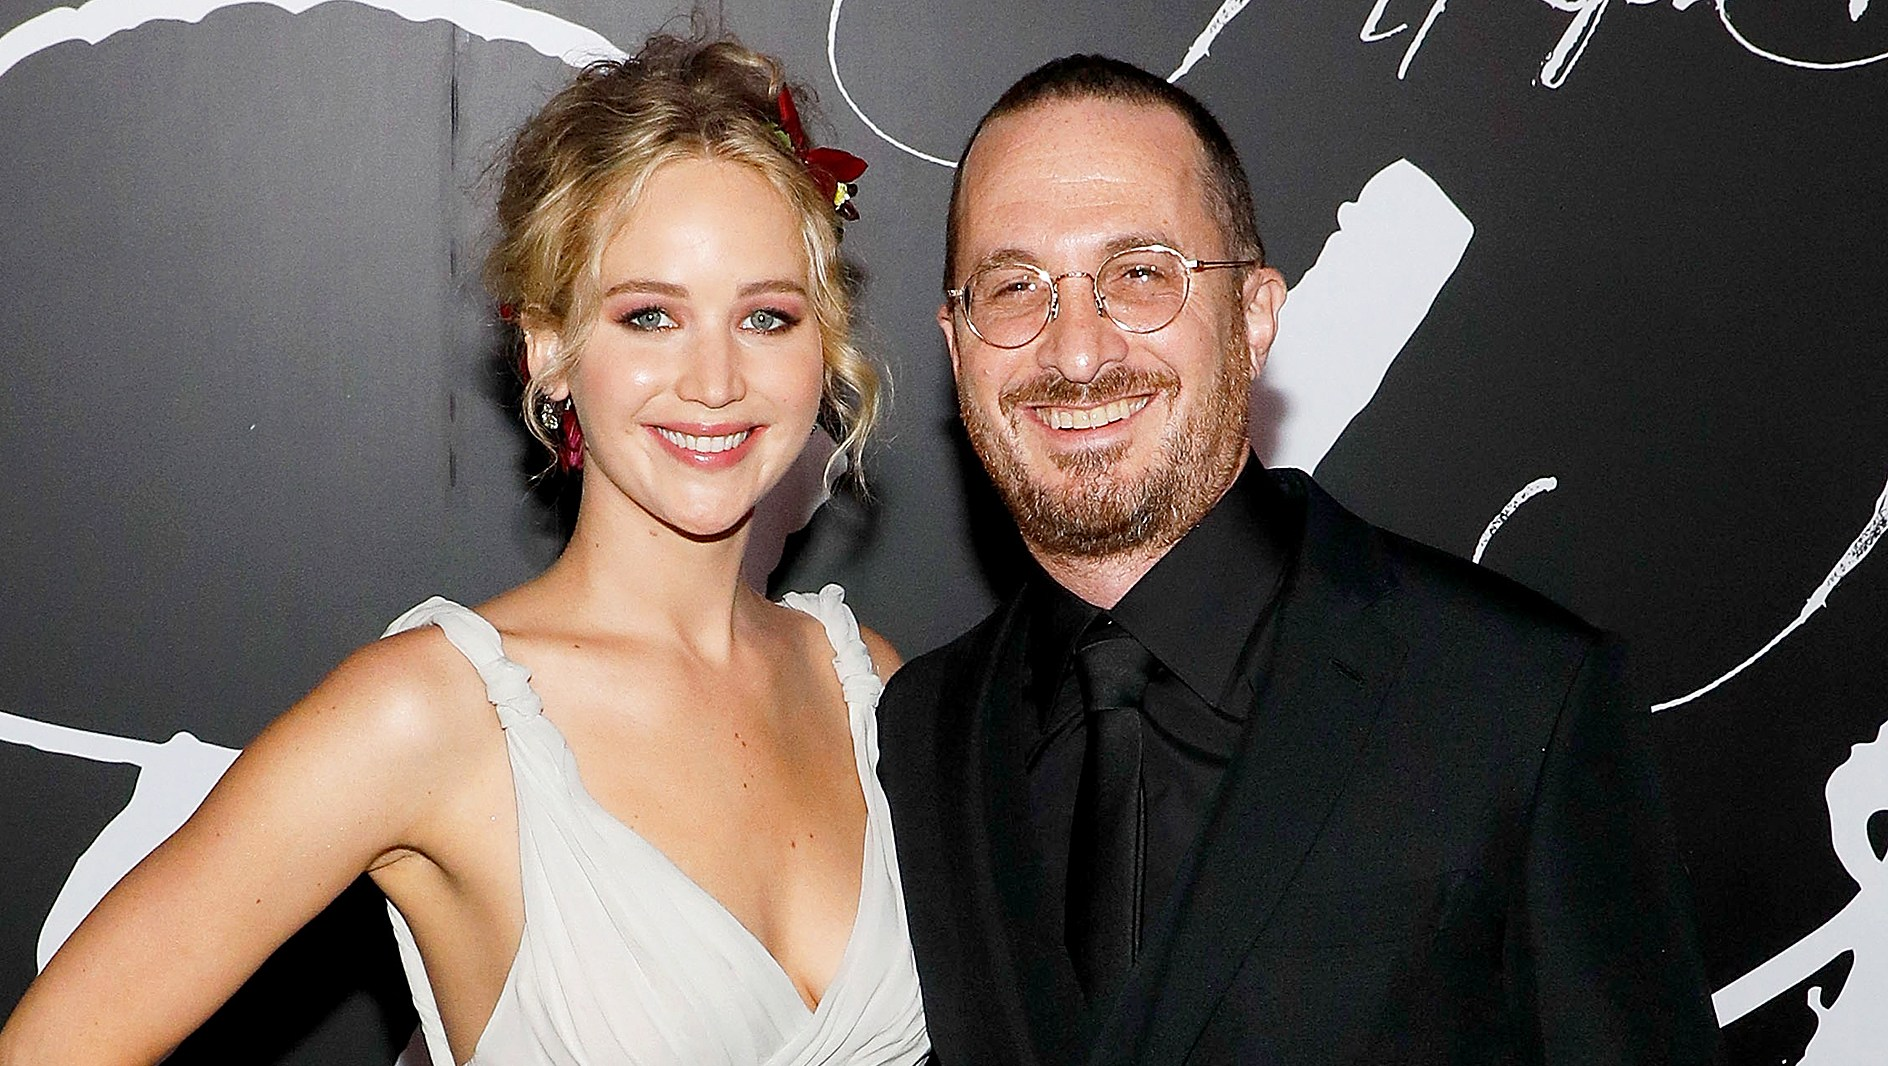 """Jennifer Lawrence and Darren Aronofsky attend the premiere of """"mother!"""" at Radio City Music Hall on September 13, 2017 in New York City."""